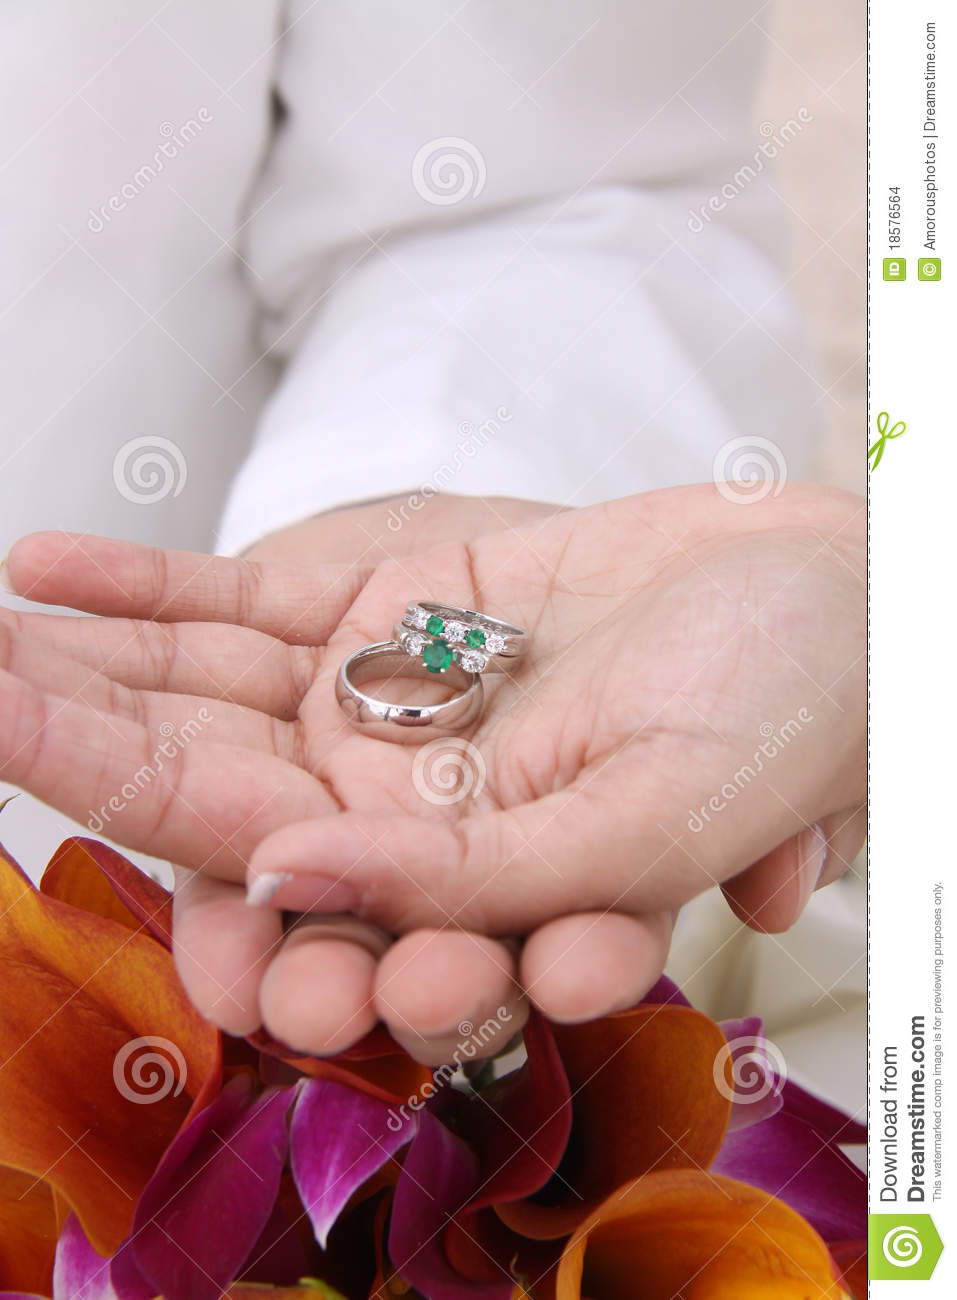 Modern Wedding Hands And Rings In Palm -Beach Stock Photo - Image of ...